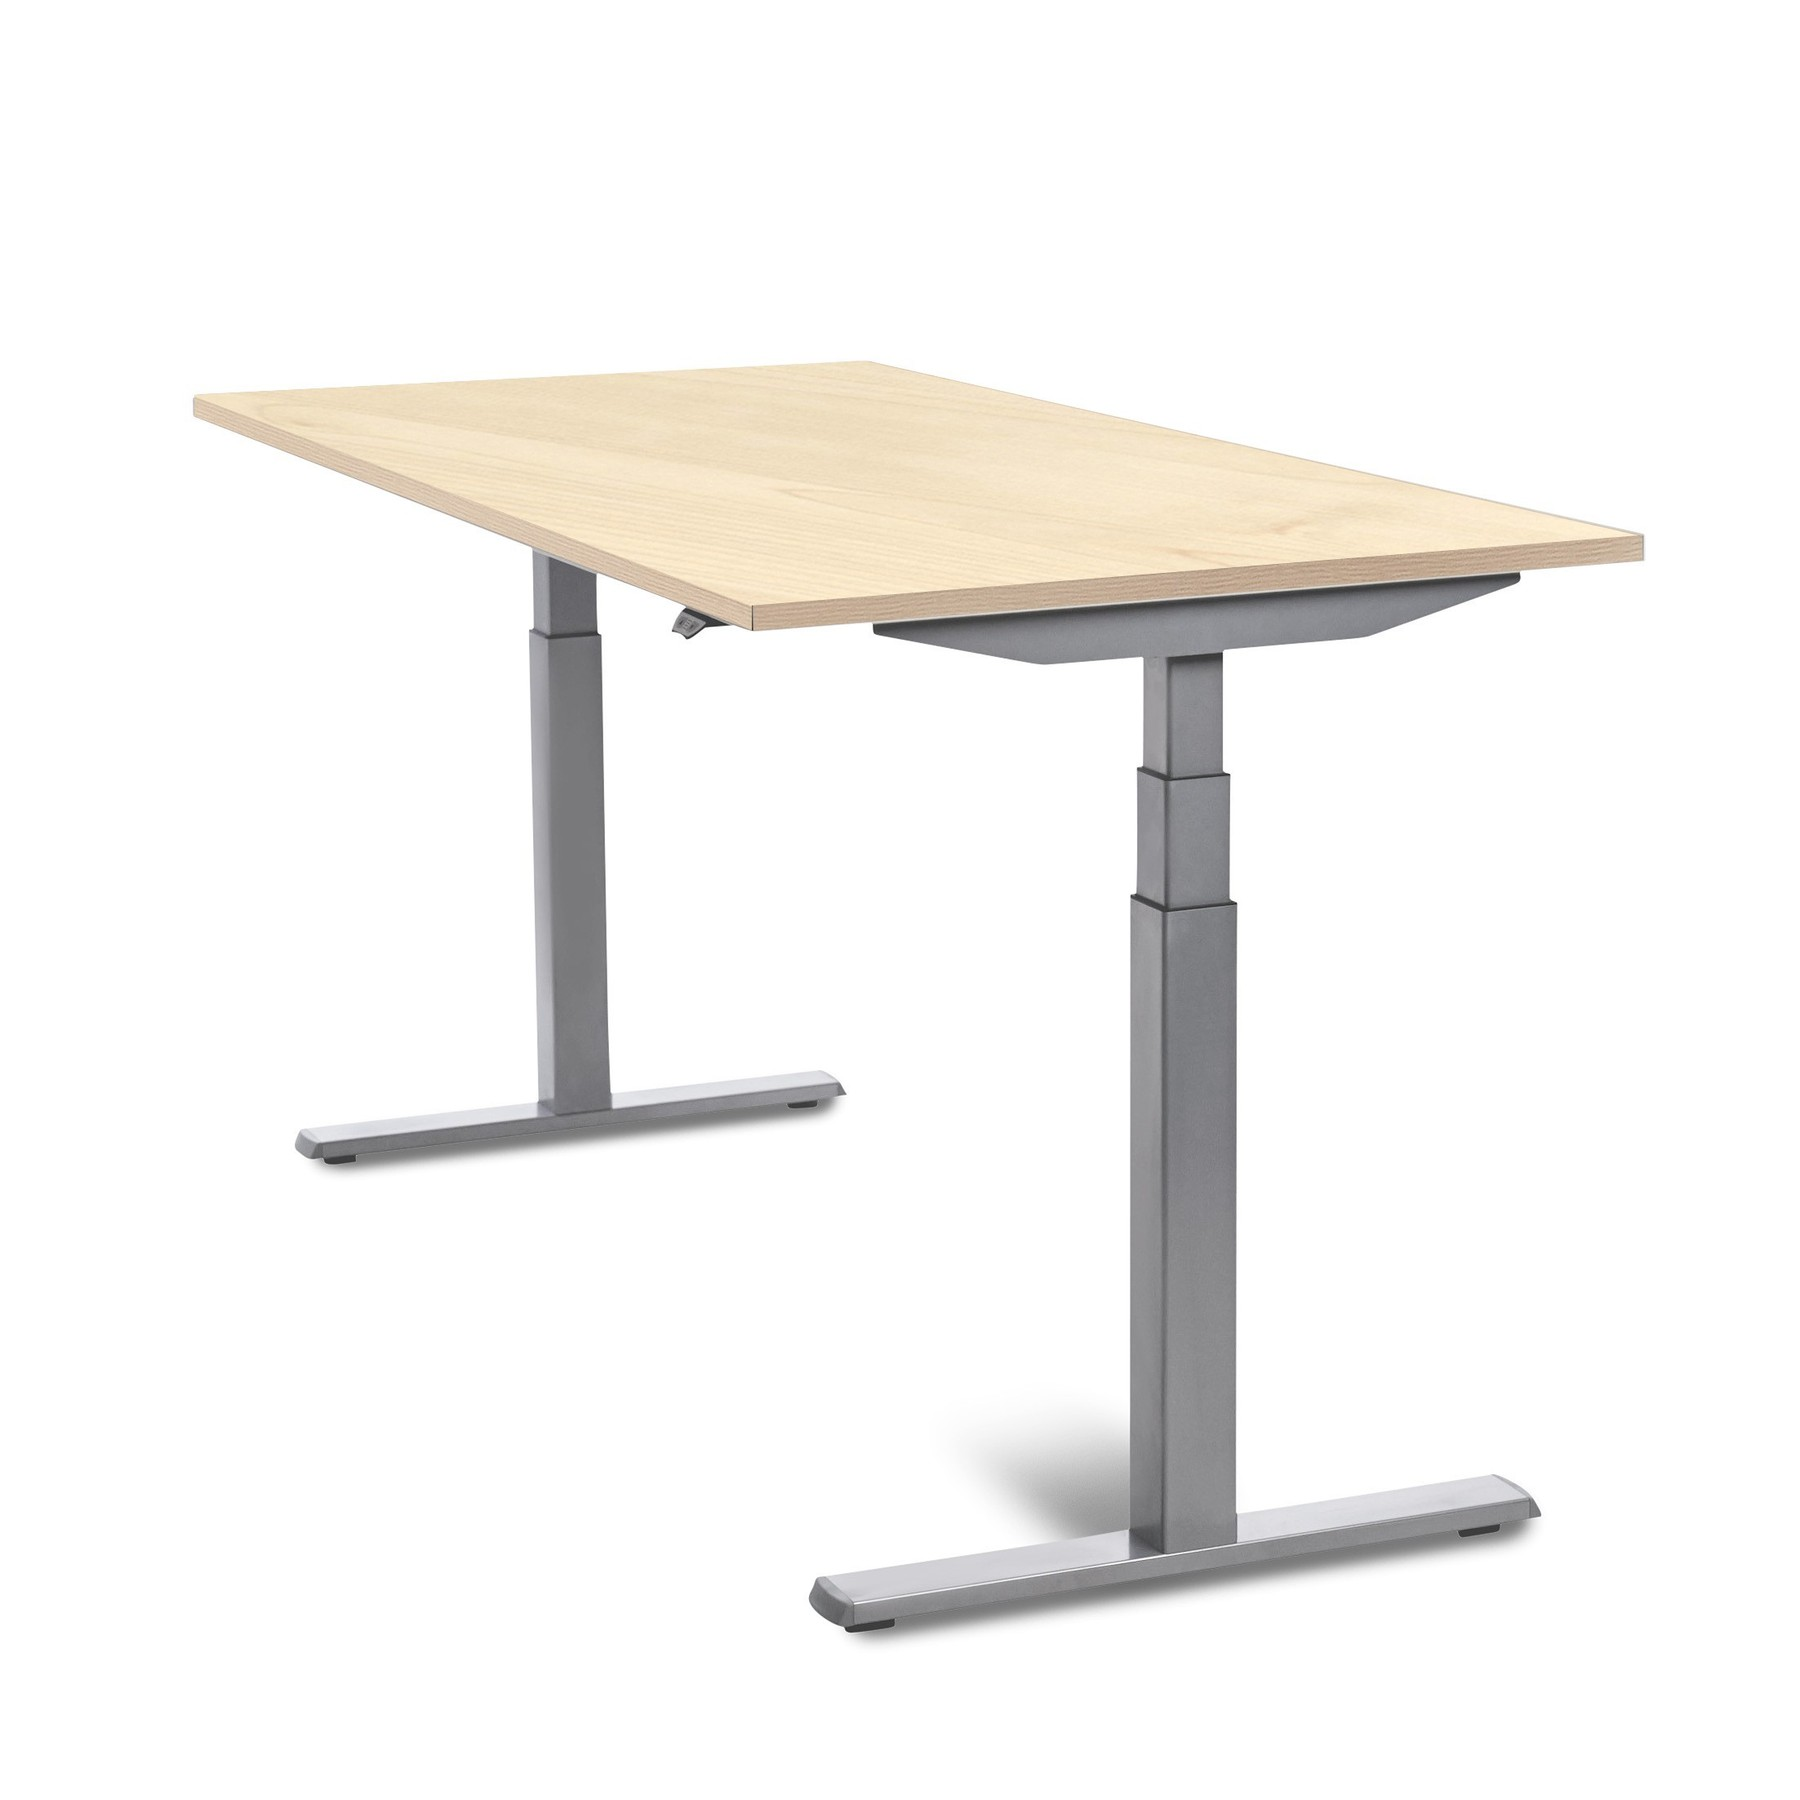 160cm HEIGHT ADJUSTABLE ELECTRICALLY DASH TABLE BEECH COLOR